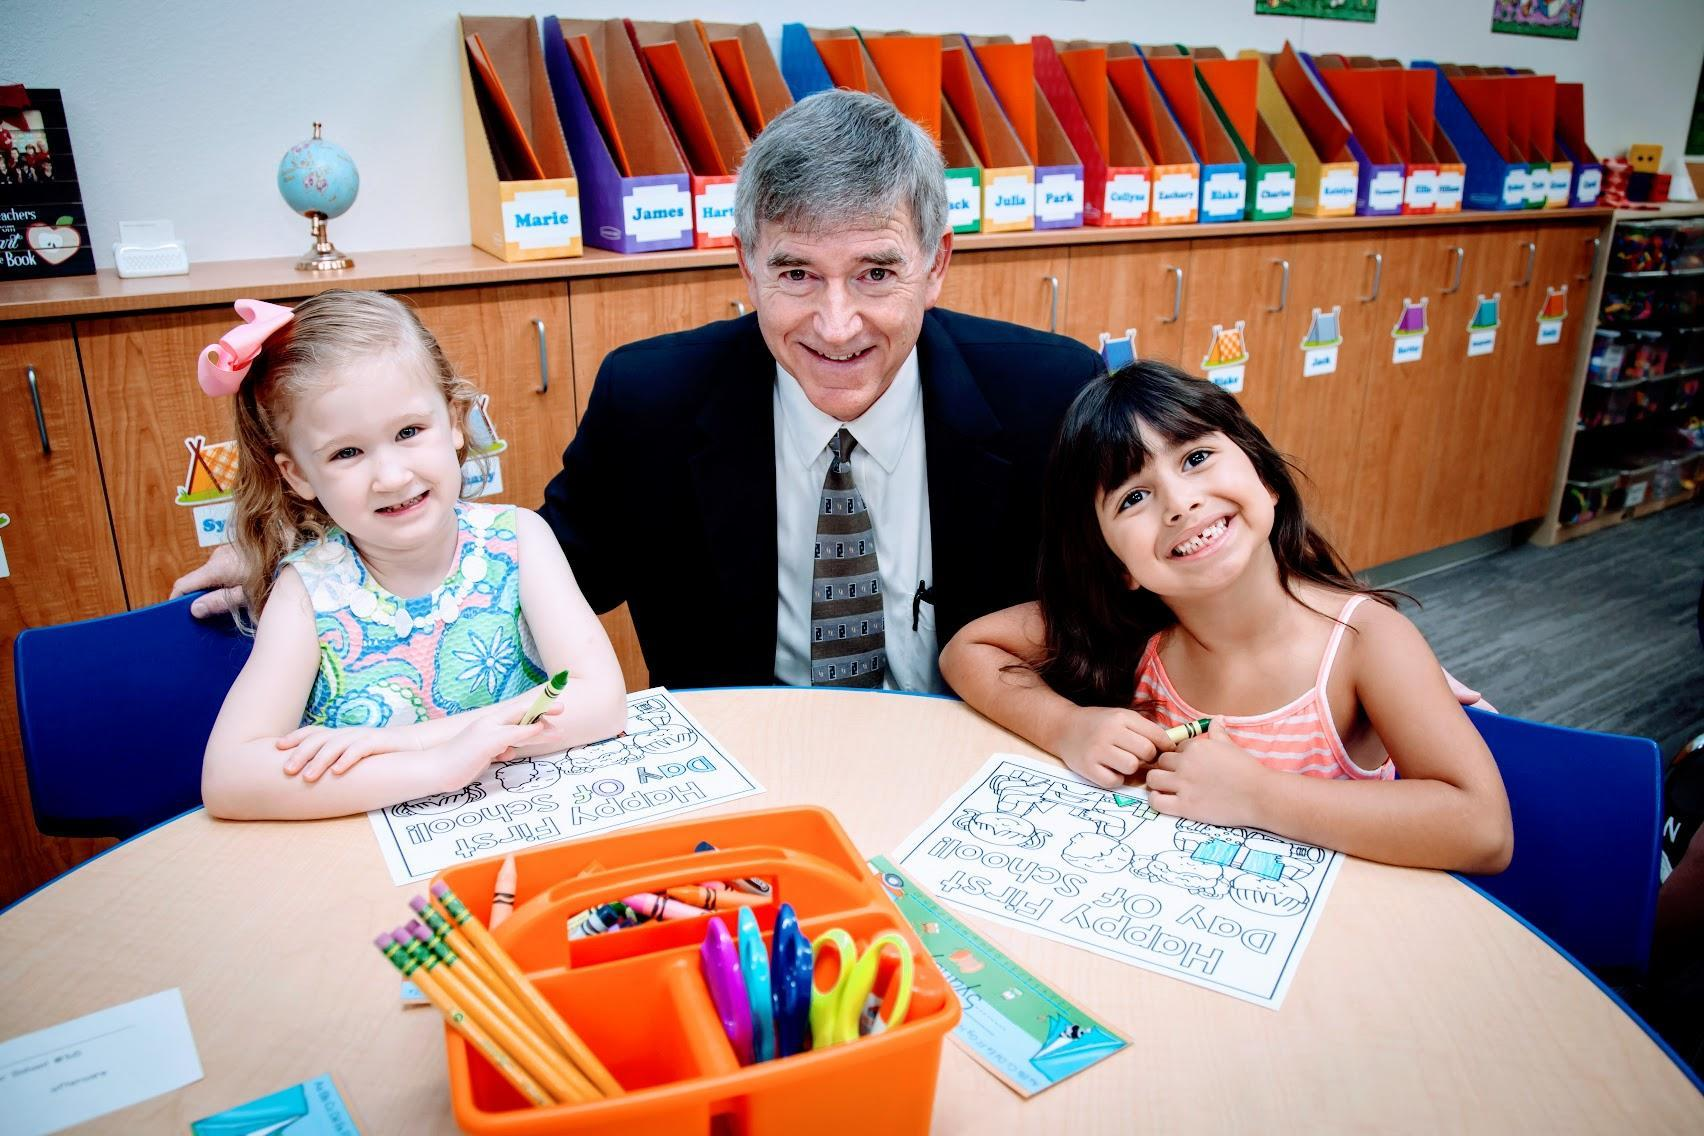 Dr. Trigg smiling with two elementary students at a round learning table